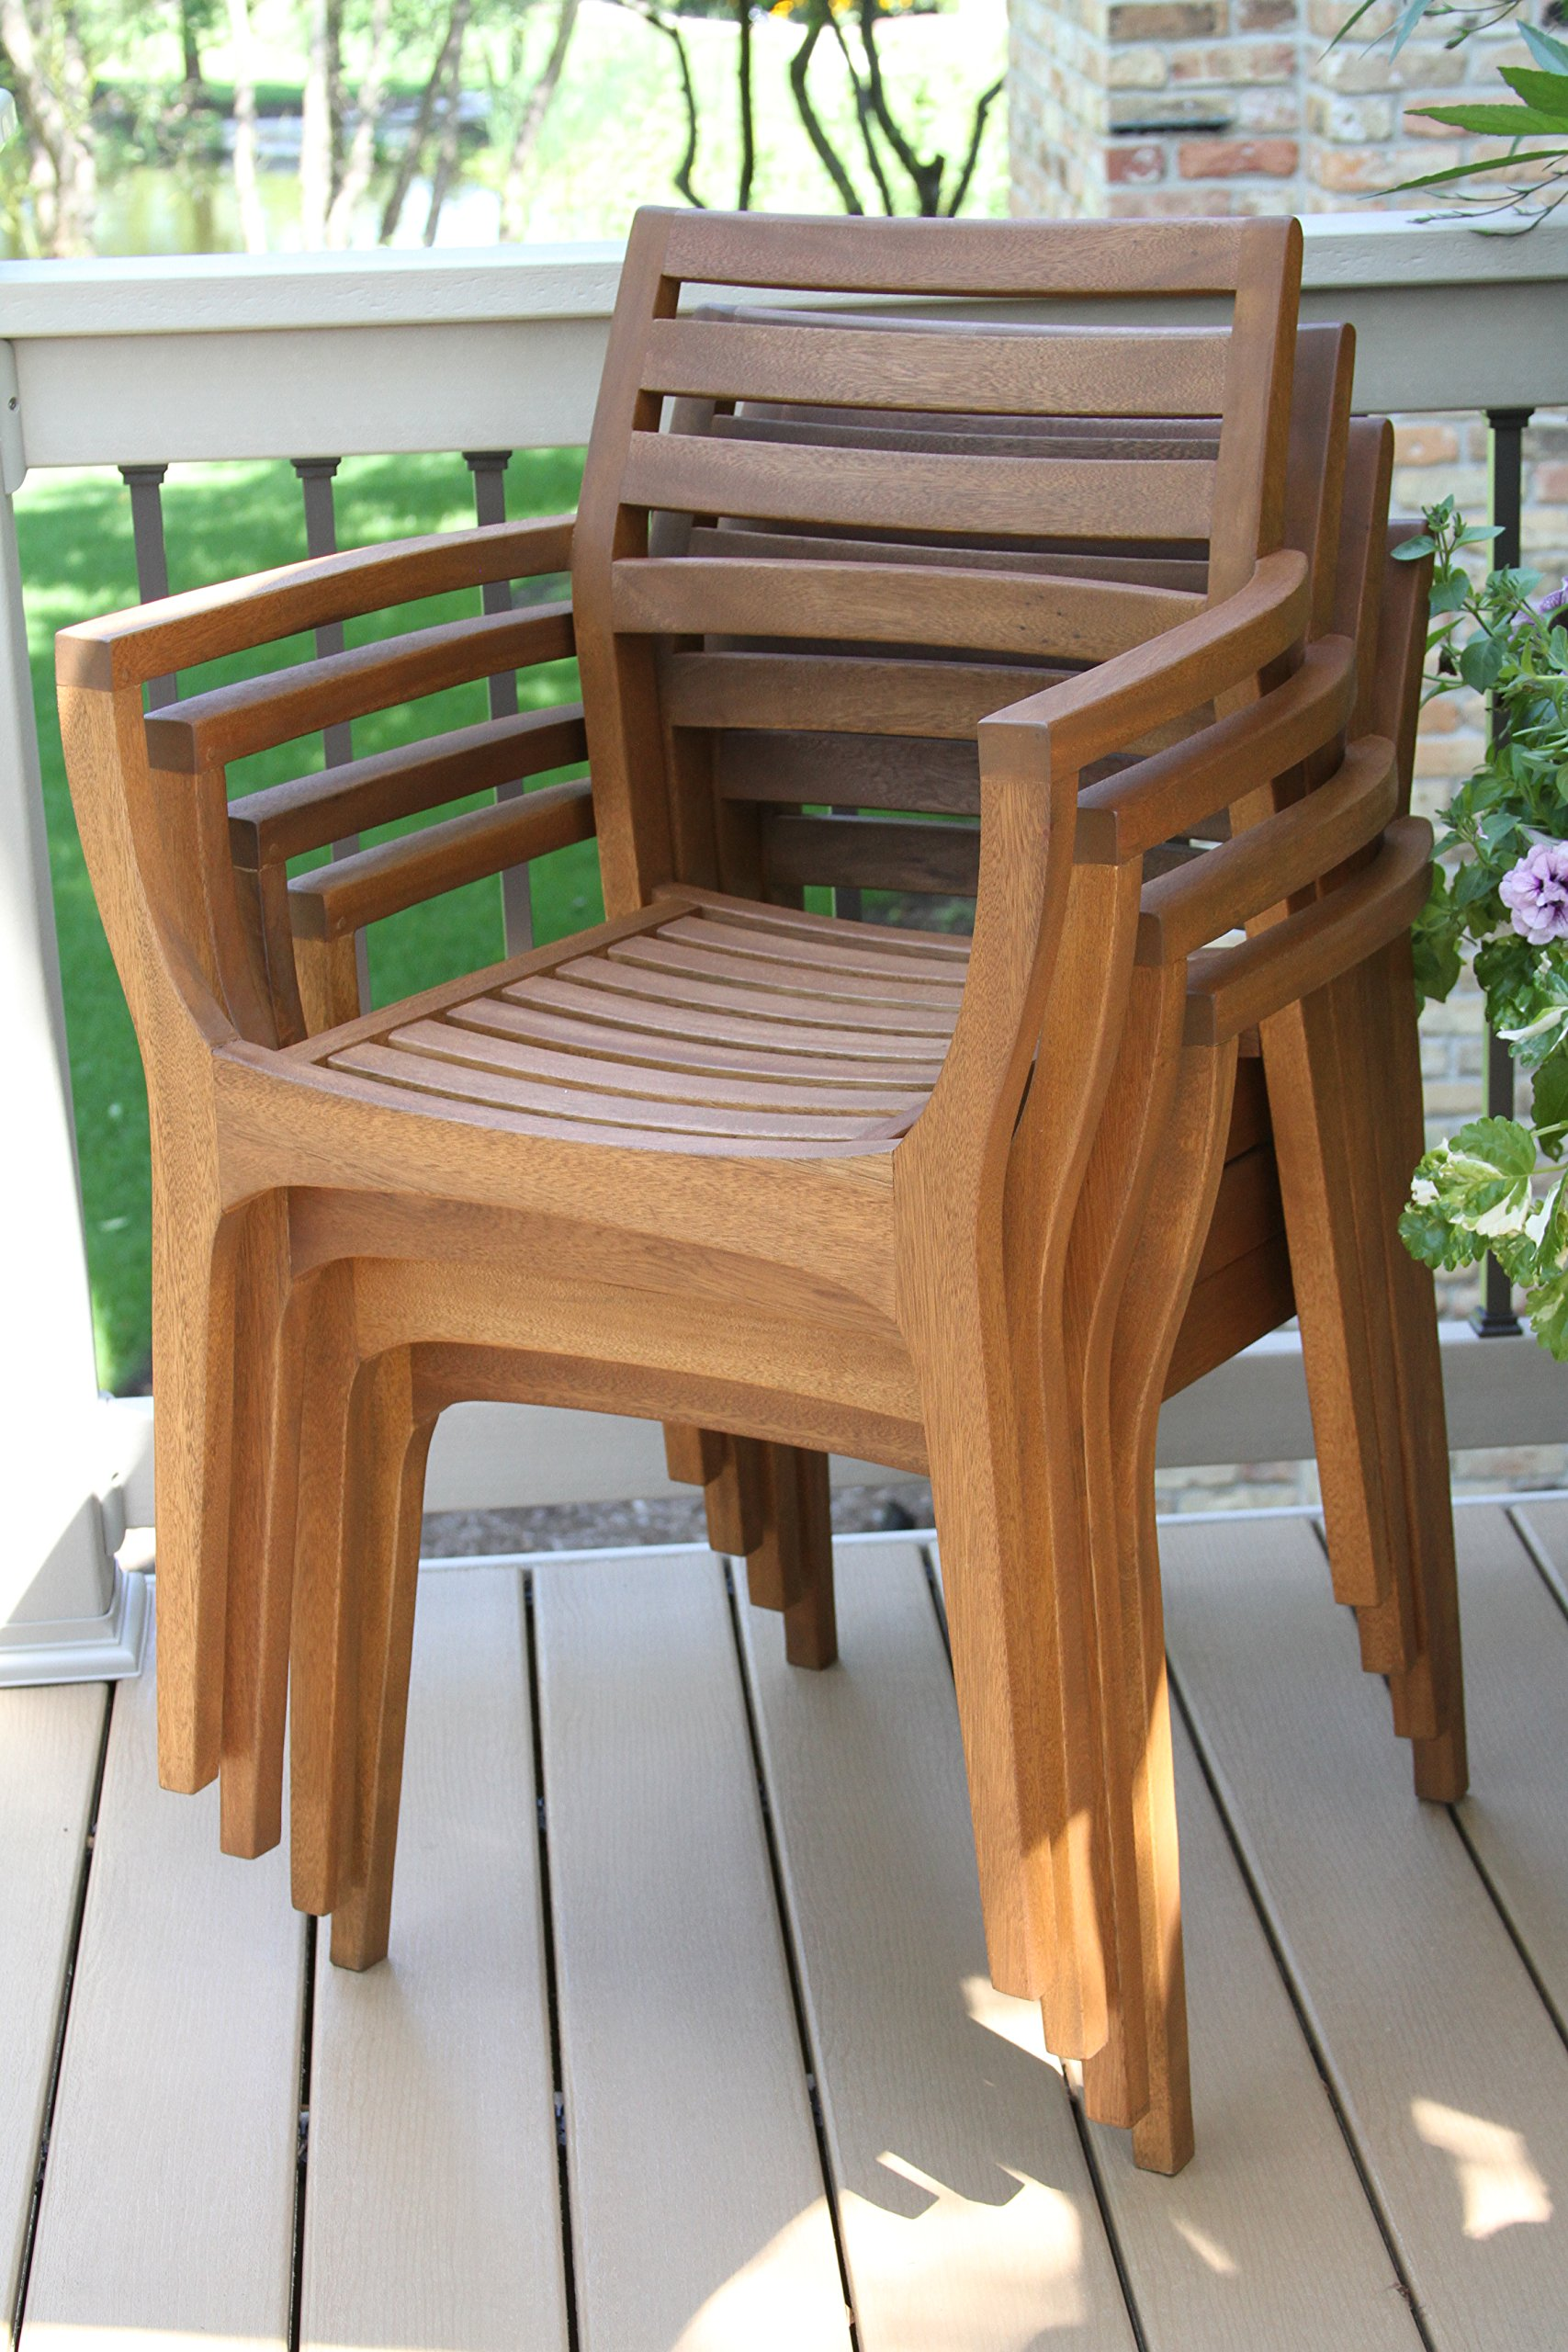 Outdoor Interiors Stacking Chairs, Brown, Set of 4